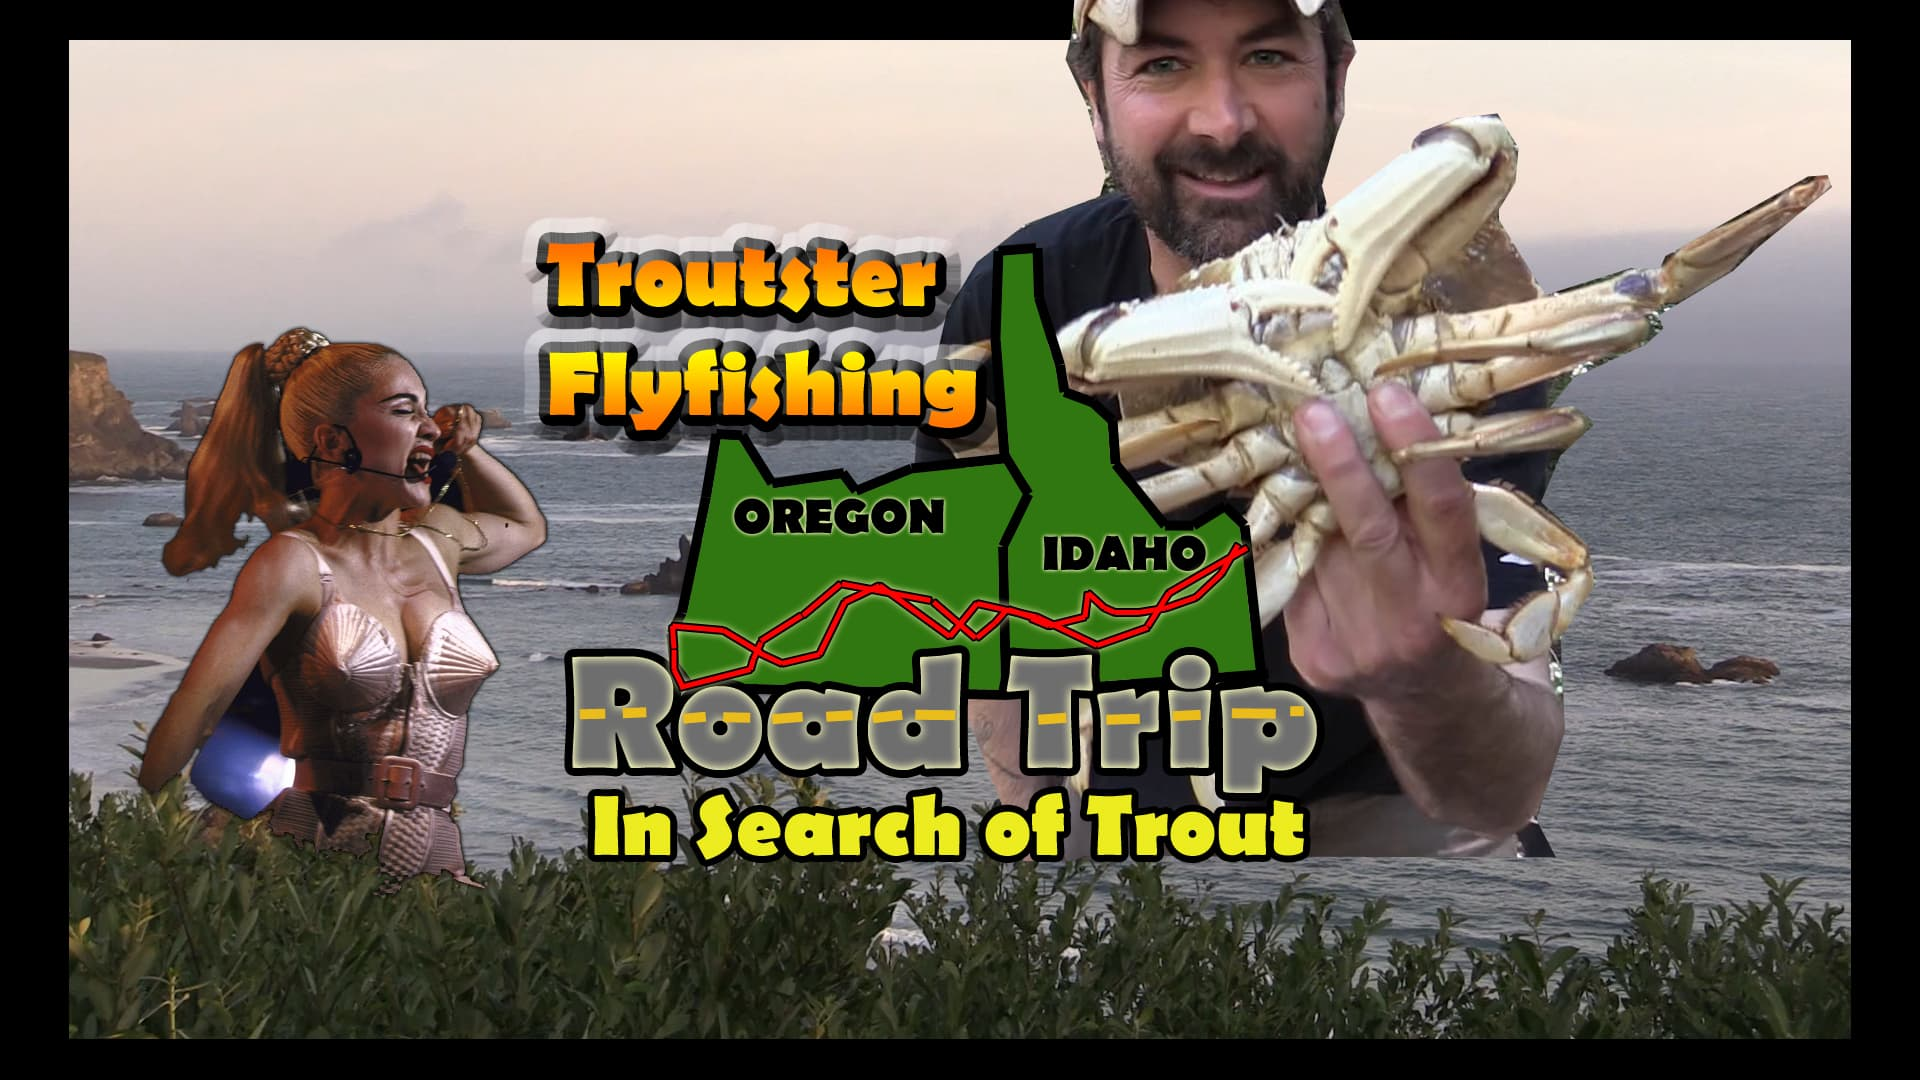 Road trip through oregon and idaho in search of trout.